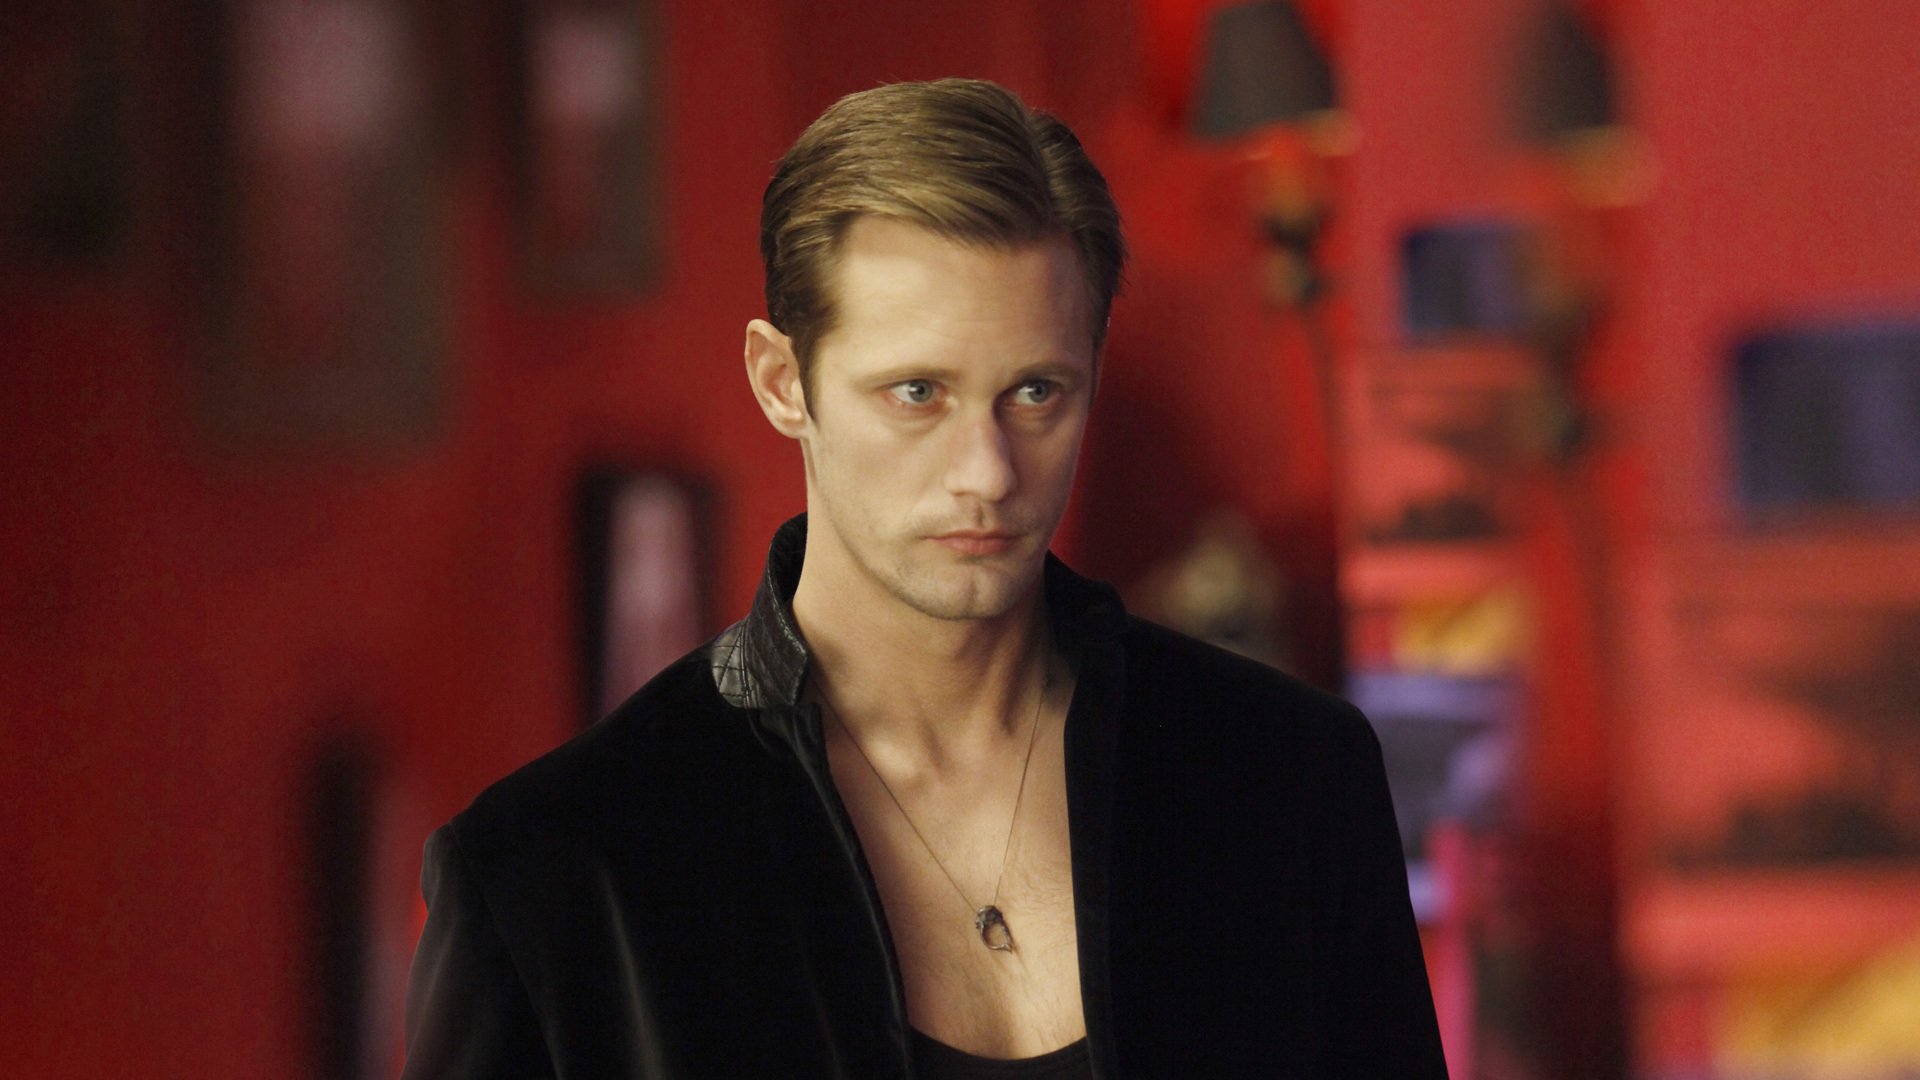 True Blood images Eric Northman HD wallpaper and background photos